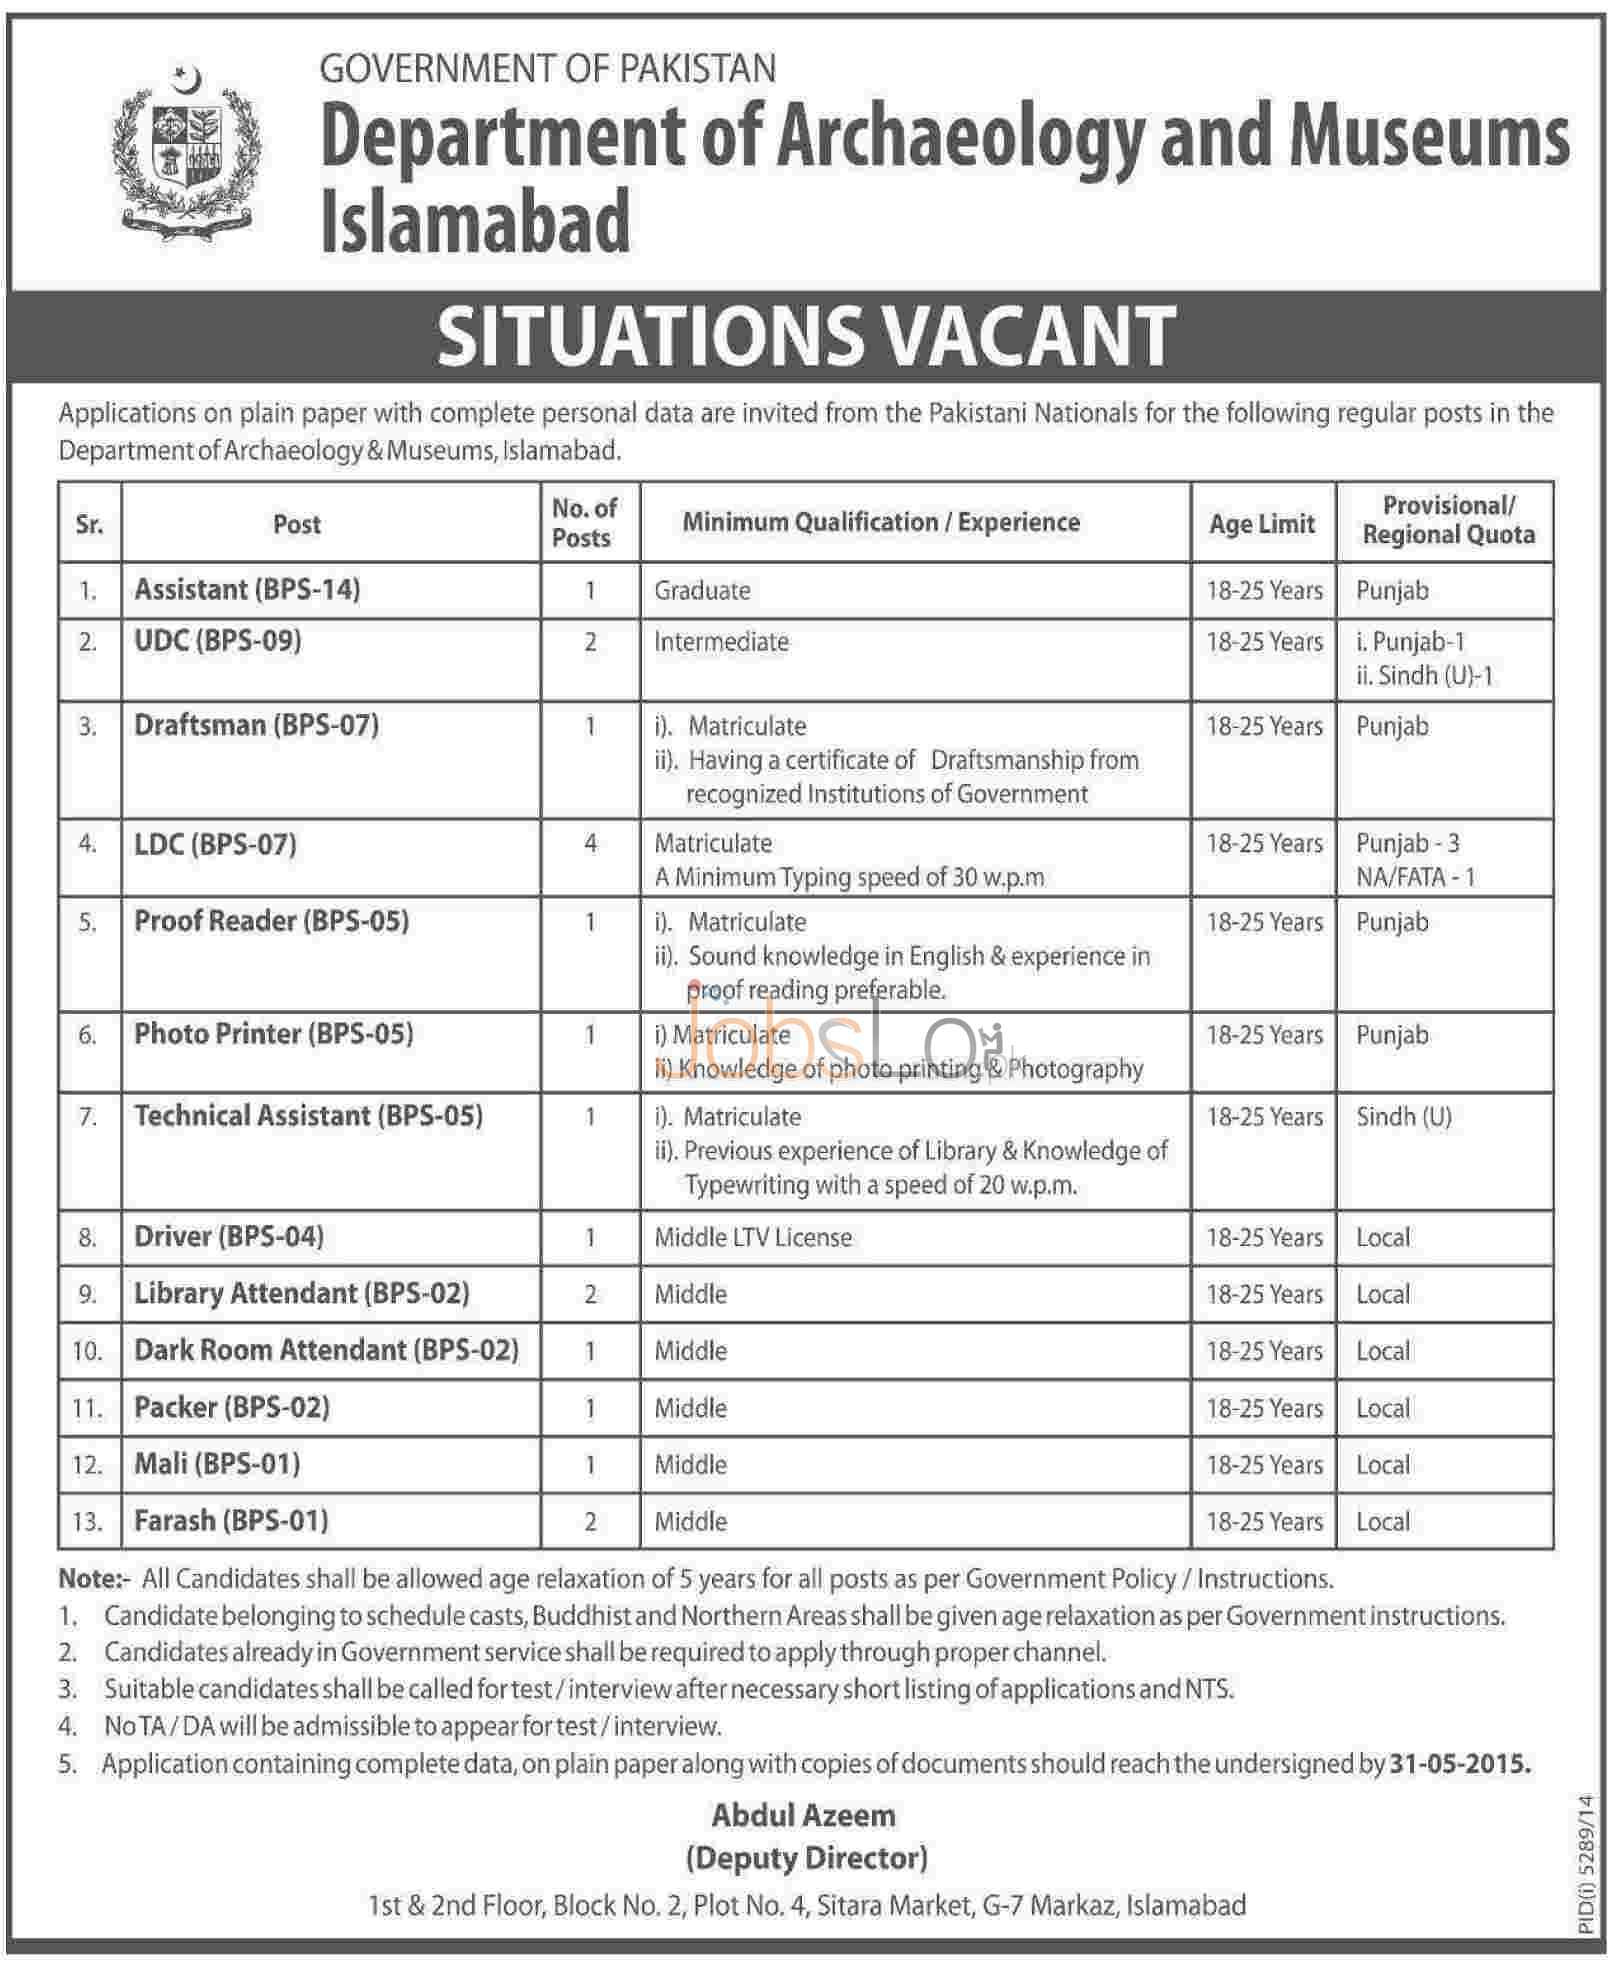 Jobs in Department of Archaeology & Museums Isamabad 2015 Assistant, UDC, LDC